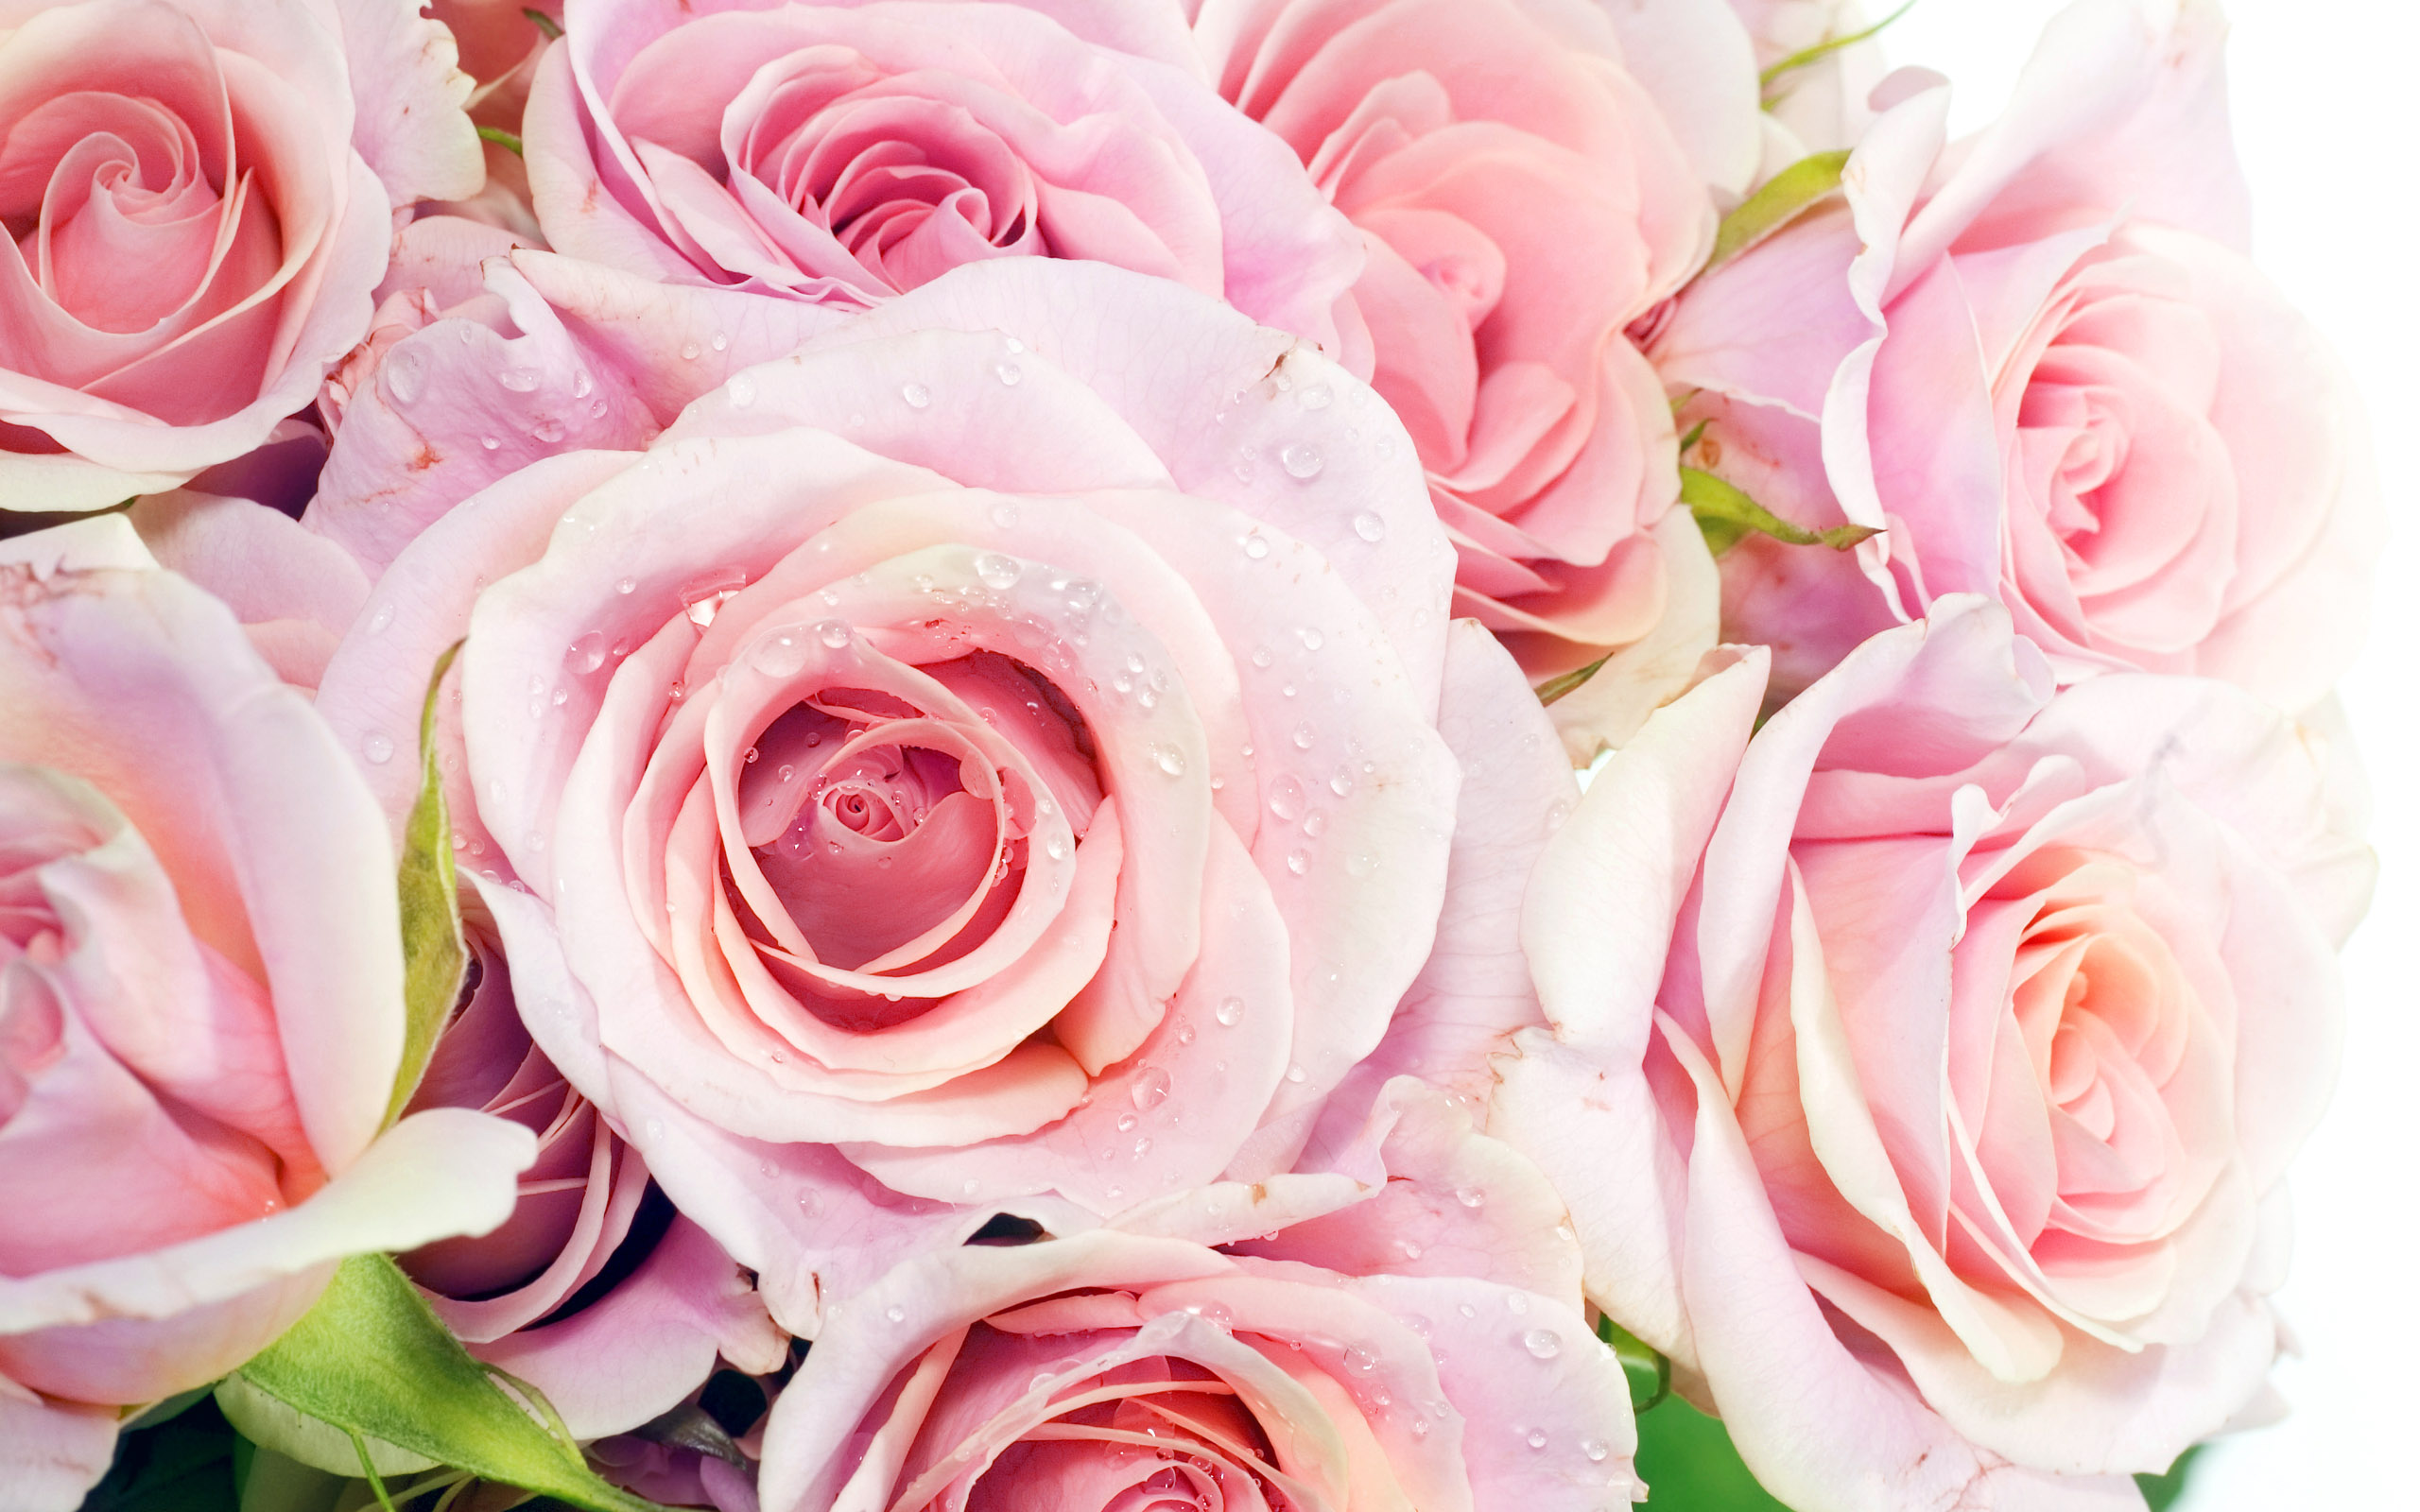 Pink Roses Backgrounds Wallpaper High Definition High Quality